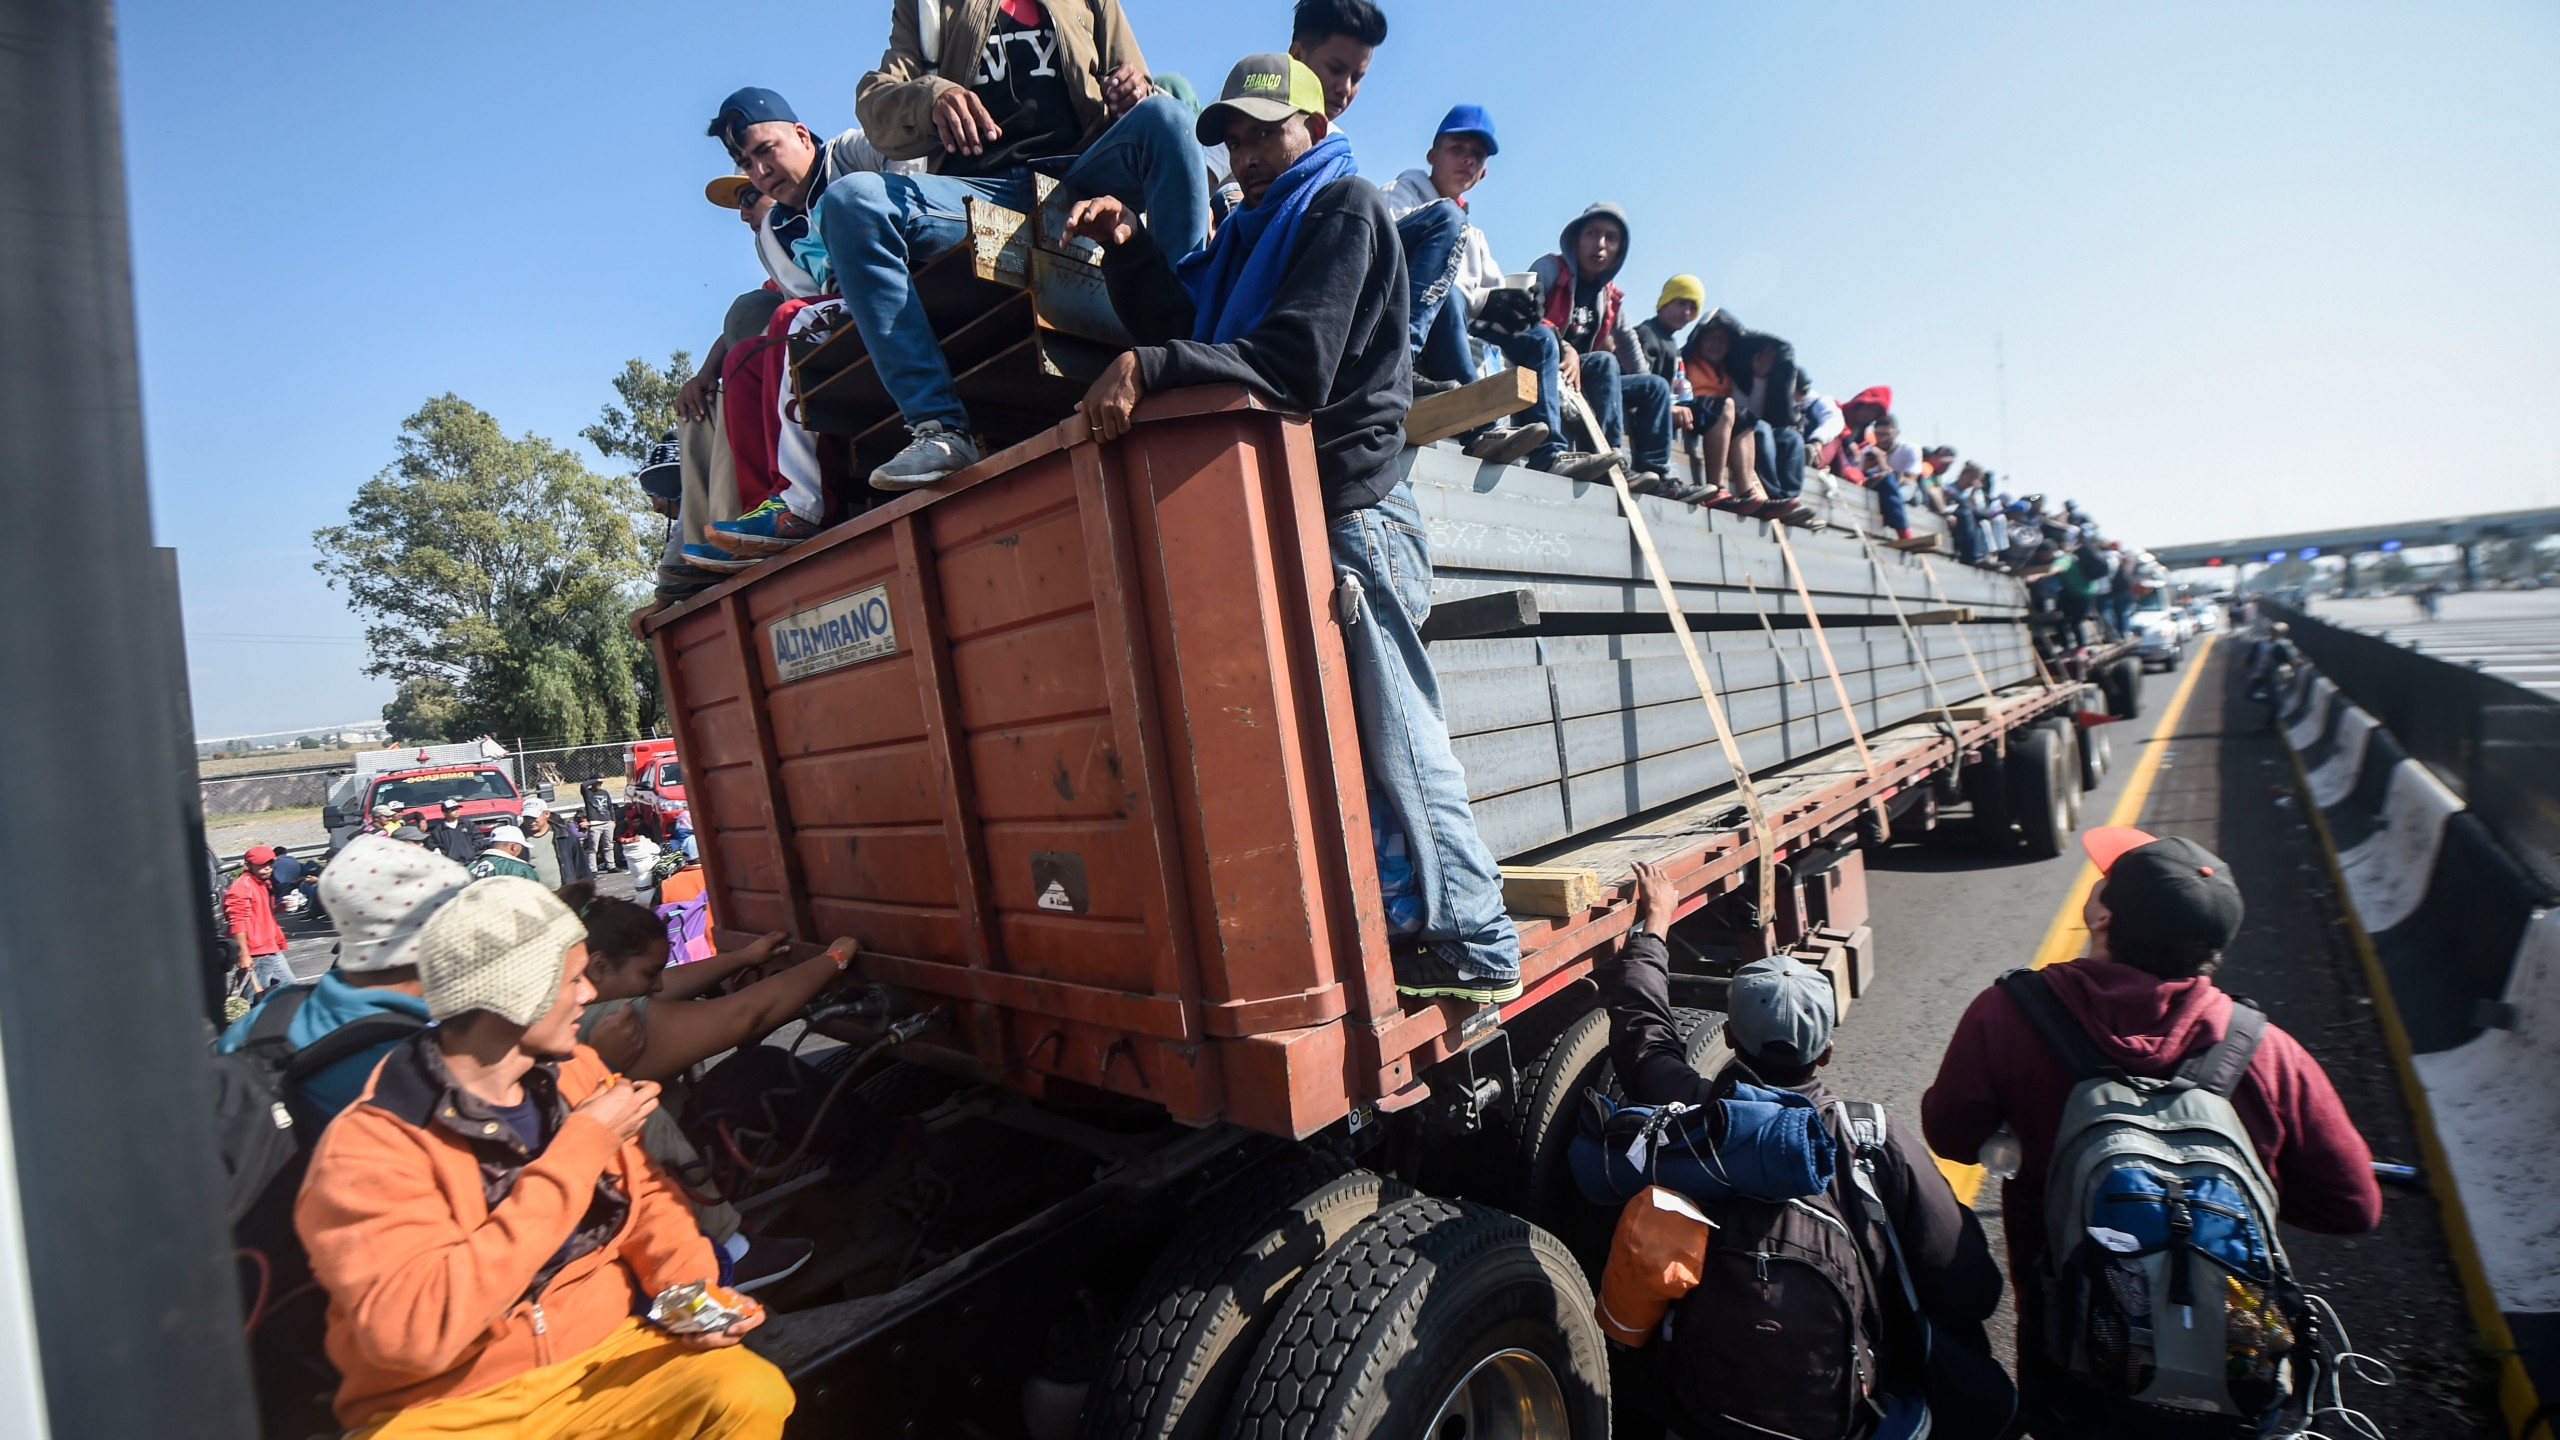 Central American migrants taking part in a caravan to the U.S. are pictured on board a truck heading to Irapuato in the central Mexican state of Guanajuato on Nov. 11, 2018. (Credit: Alfredo Estrella / AFP / Getty Images)